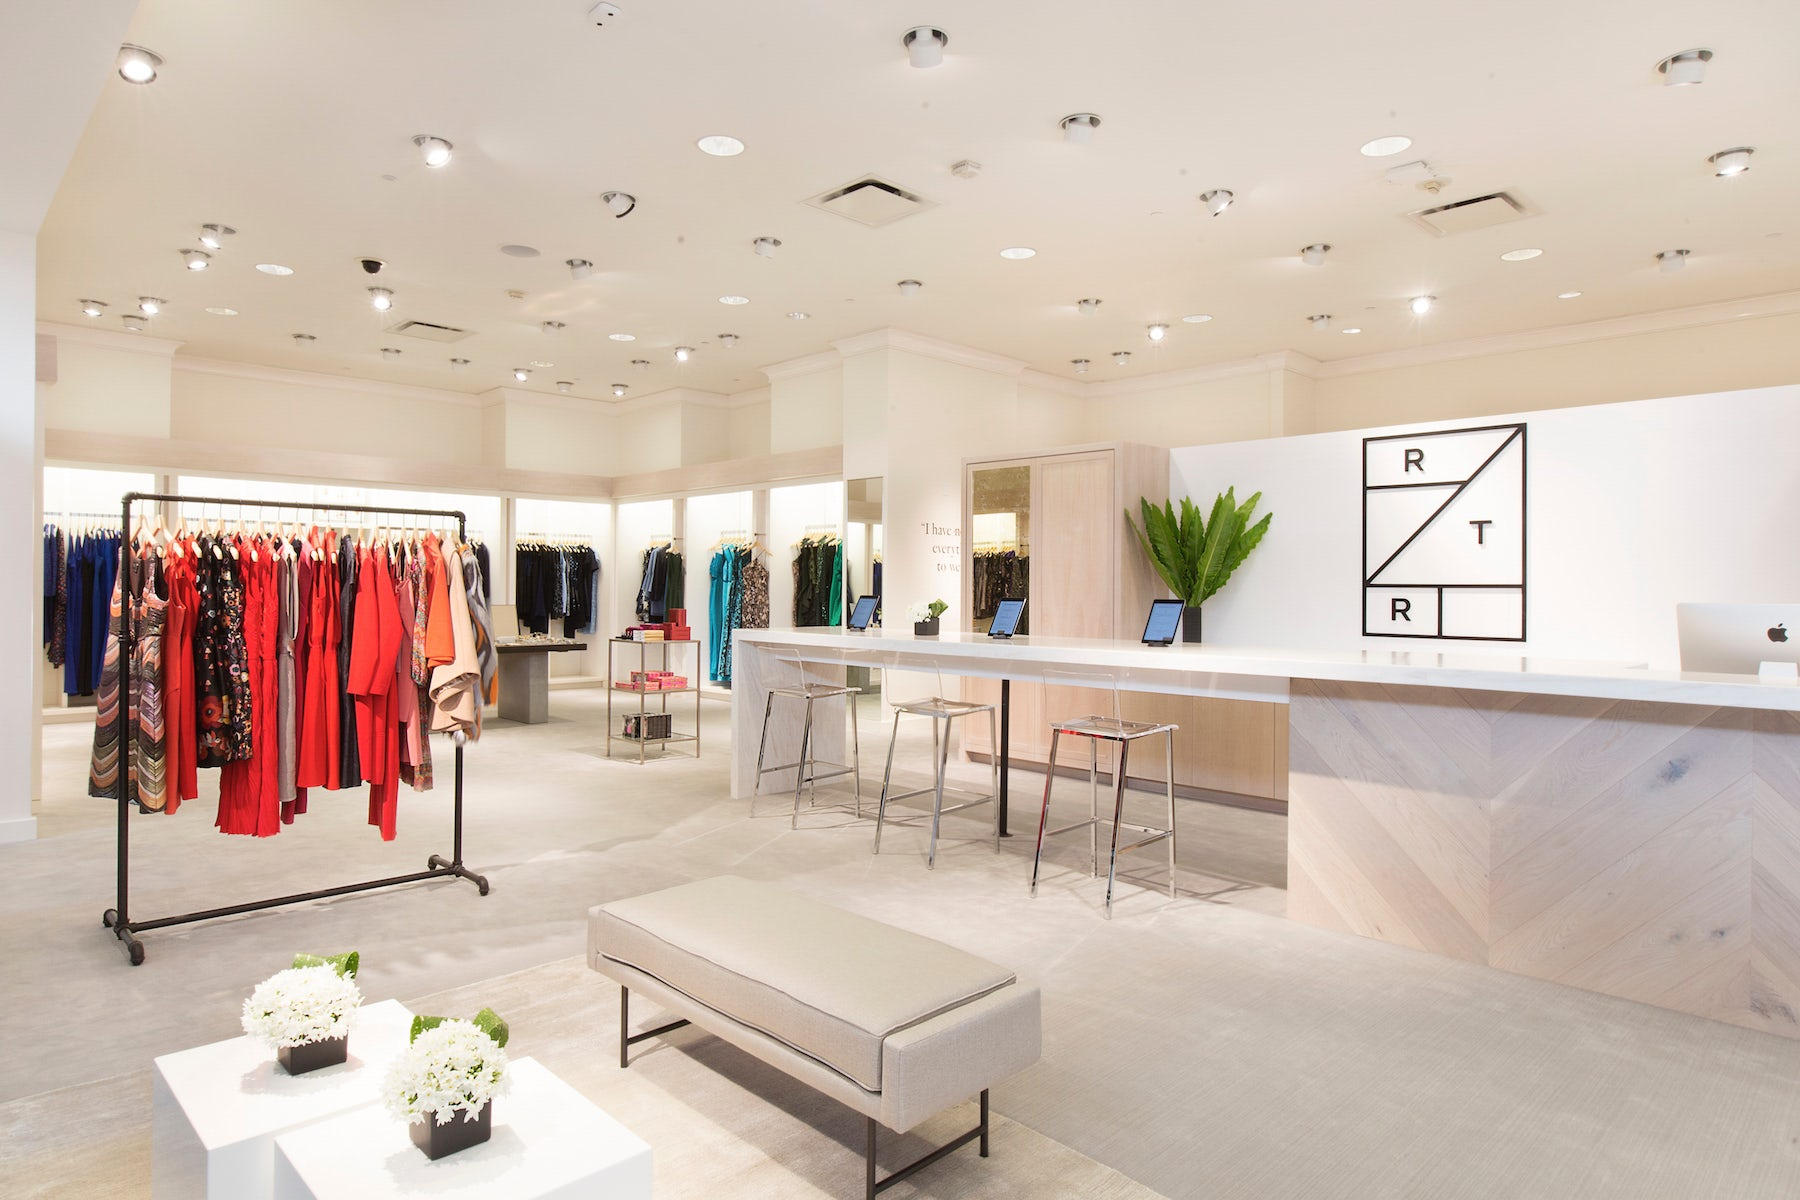 Rent the Runway's boutique in Neiman Marcus's San Francisco store | Source: Courtesy